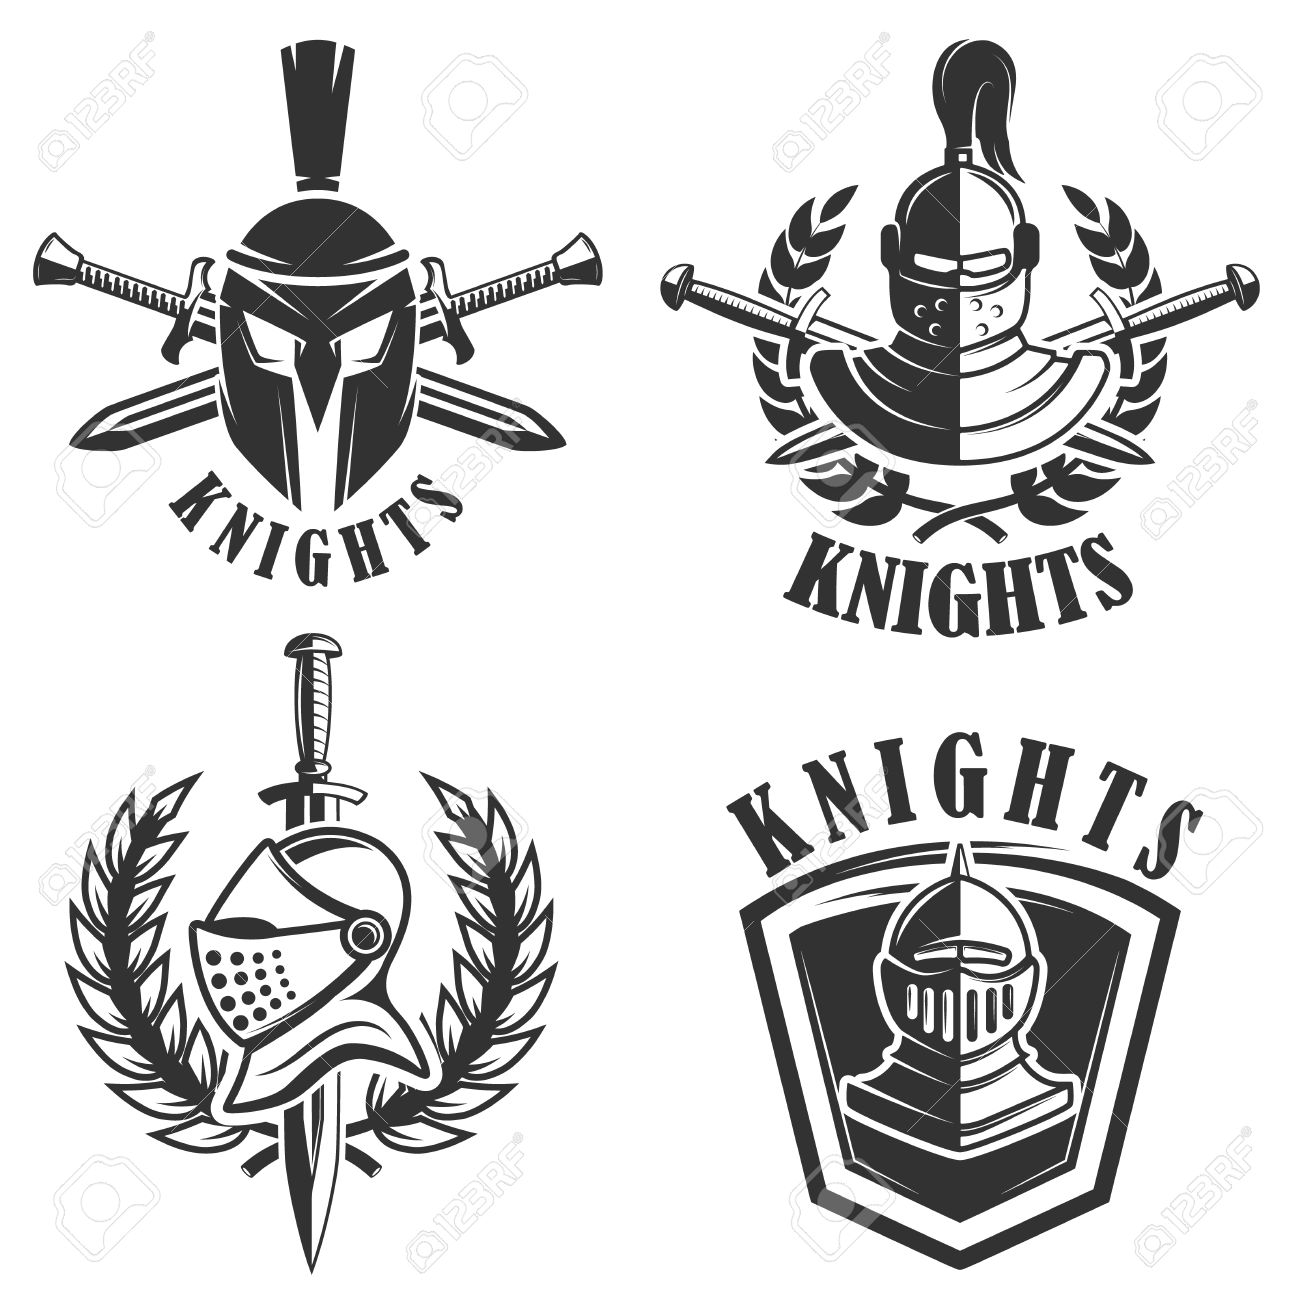 Set Of The Emblems With Knights Helmets And Swords Design Elements Royalty Free Cliparts Vectors And Stock Illustration Image 75904067